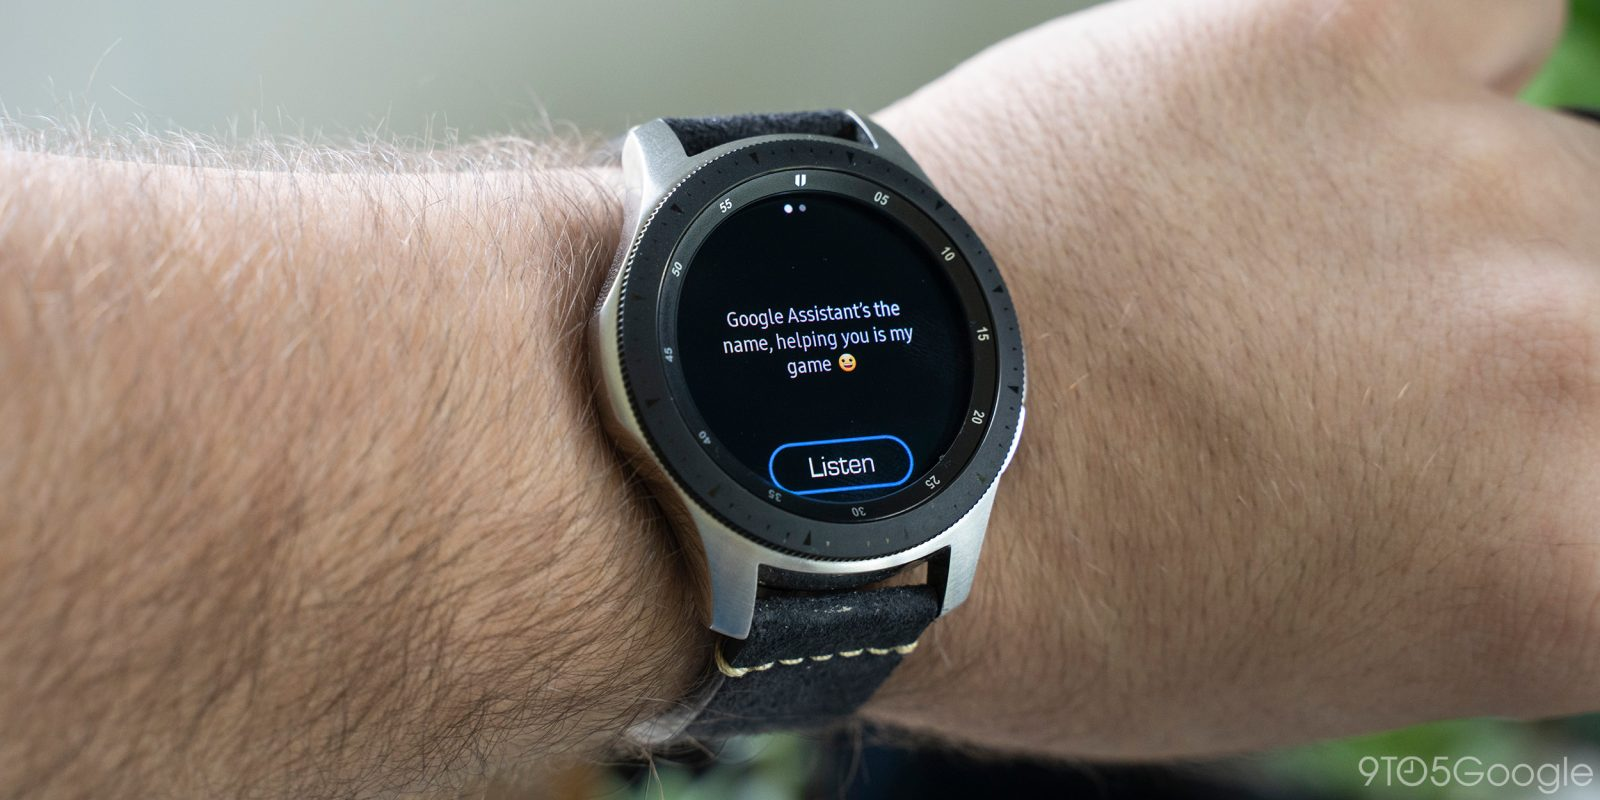 How To Use Google Assistant On Samsung Galaxy Watch 9to5google